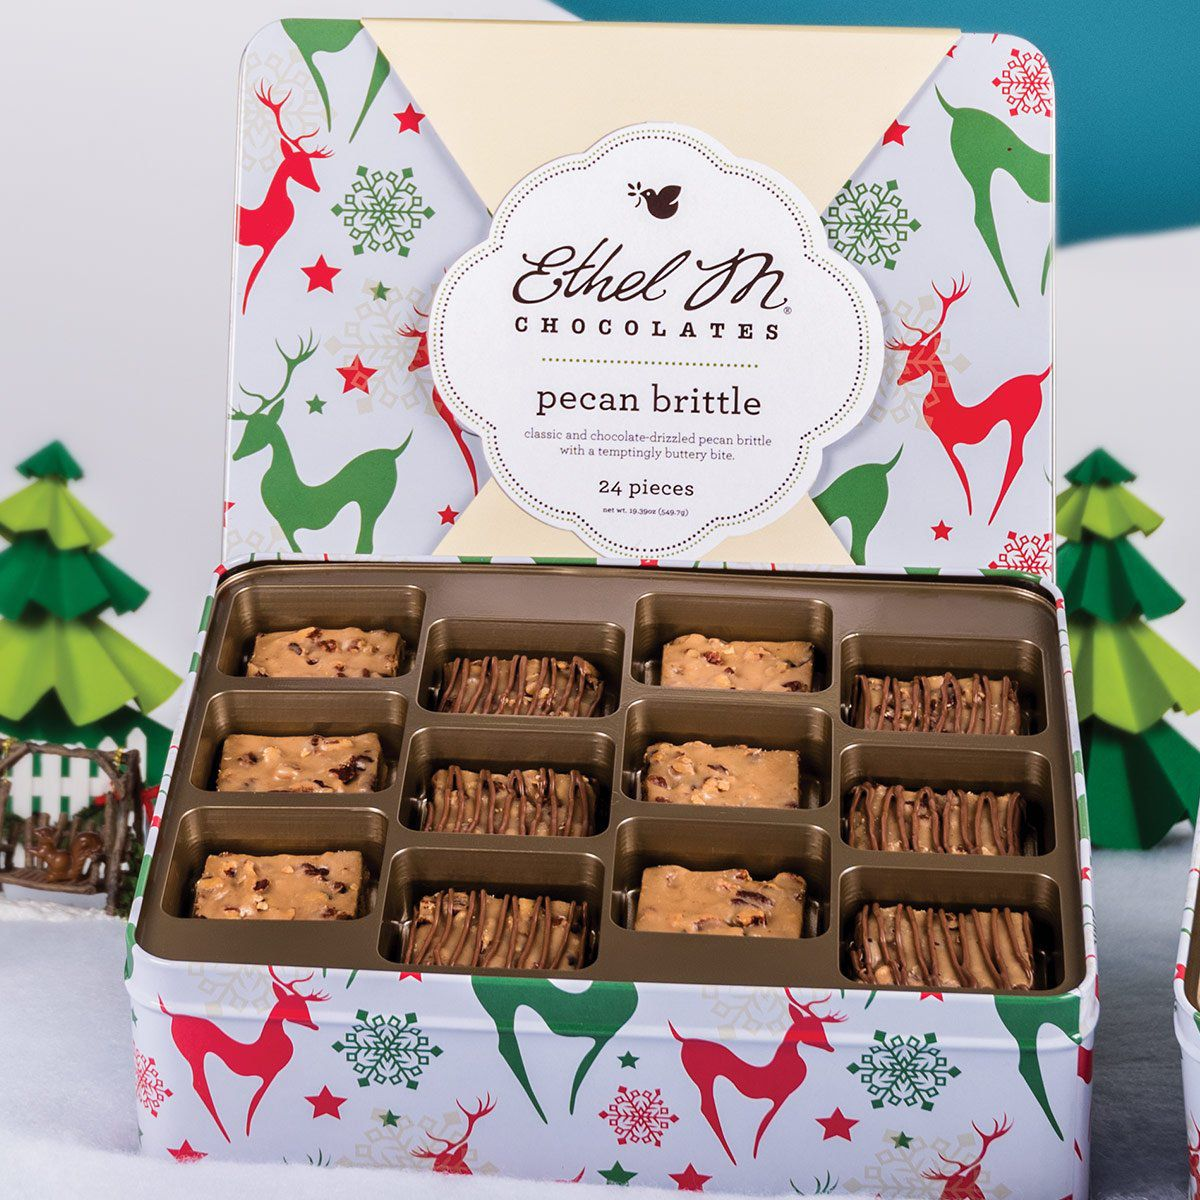 Ethel M Chocolates classic and chocolate-covered pecan brittle